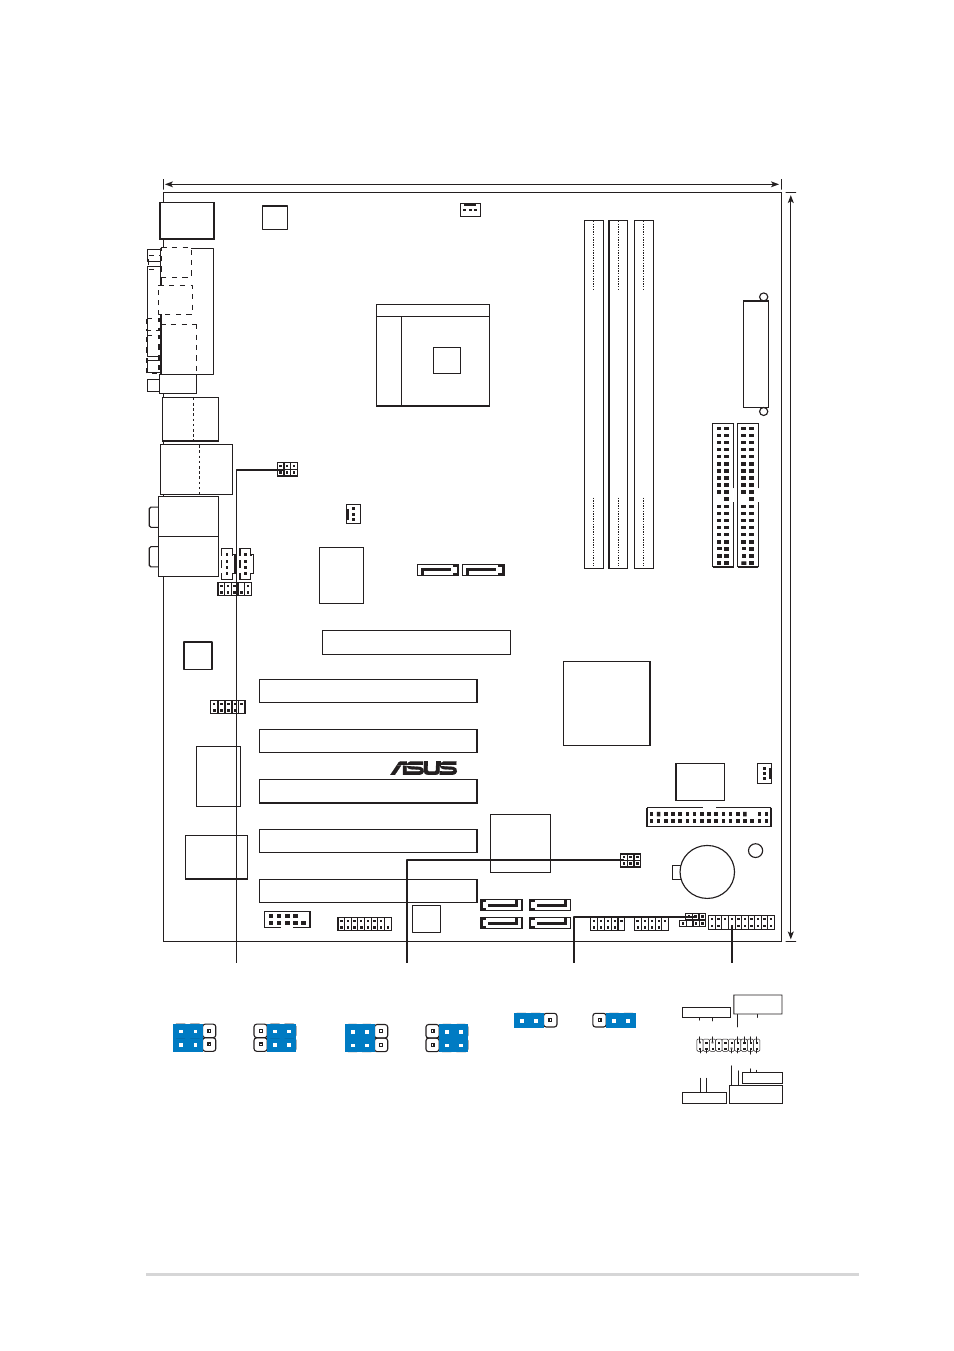 3 Motherboard Layout  Asus K8n